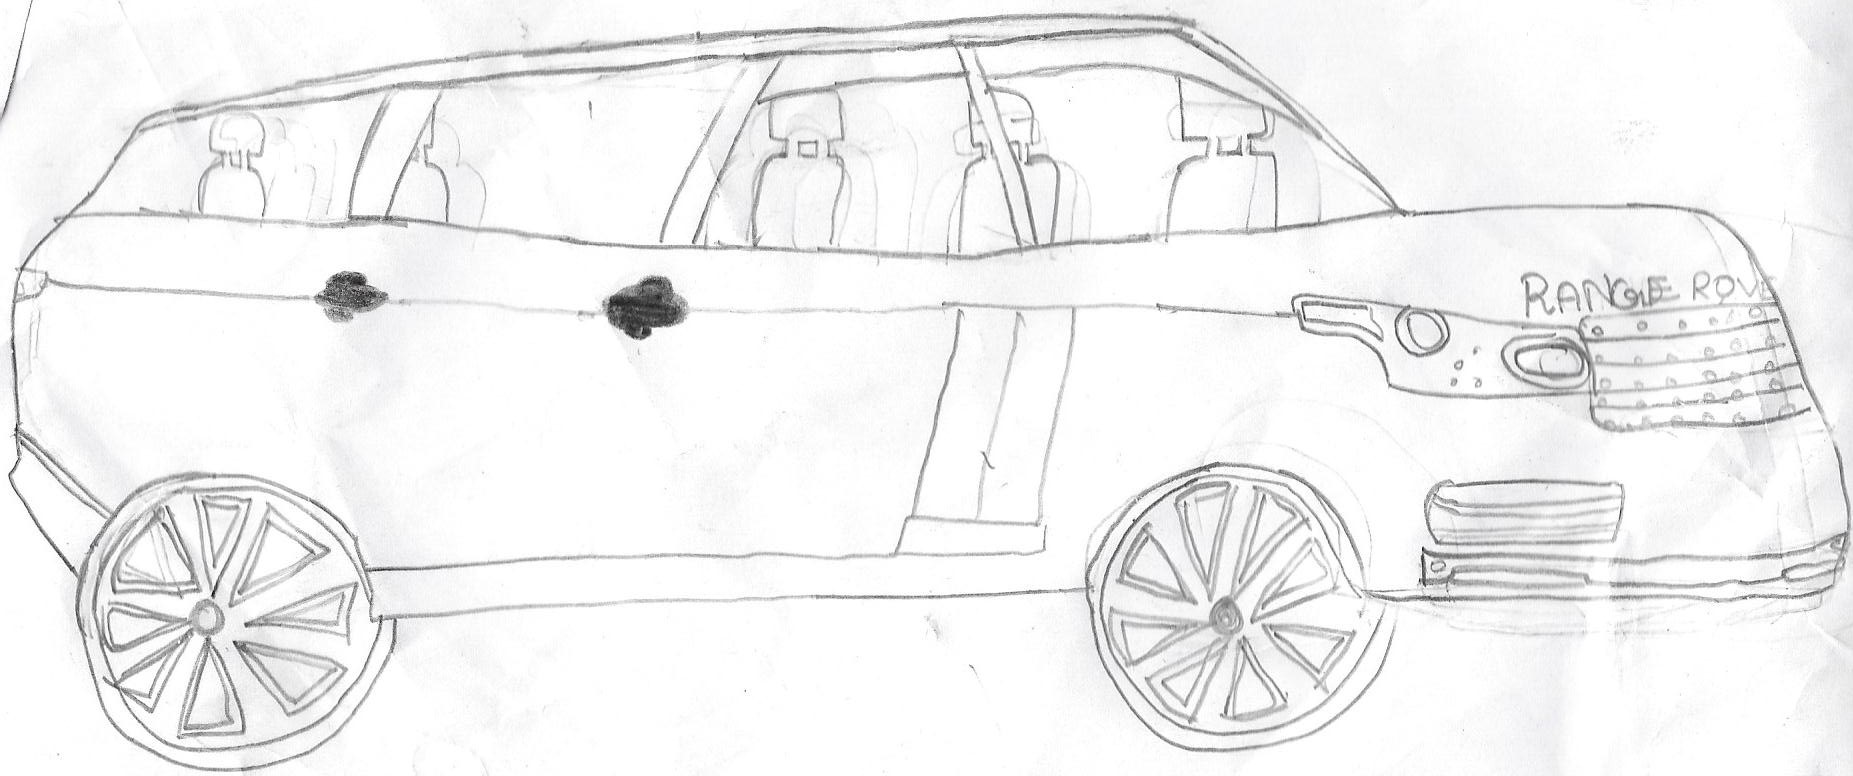 hight resolution of hand drawn cars pencil sketches of cars range rover